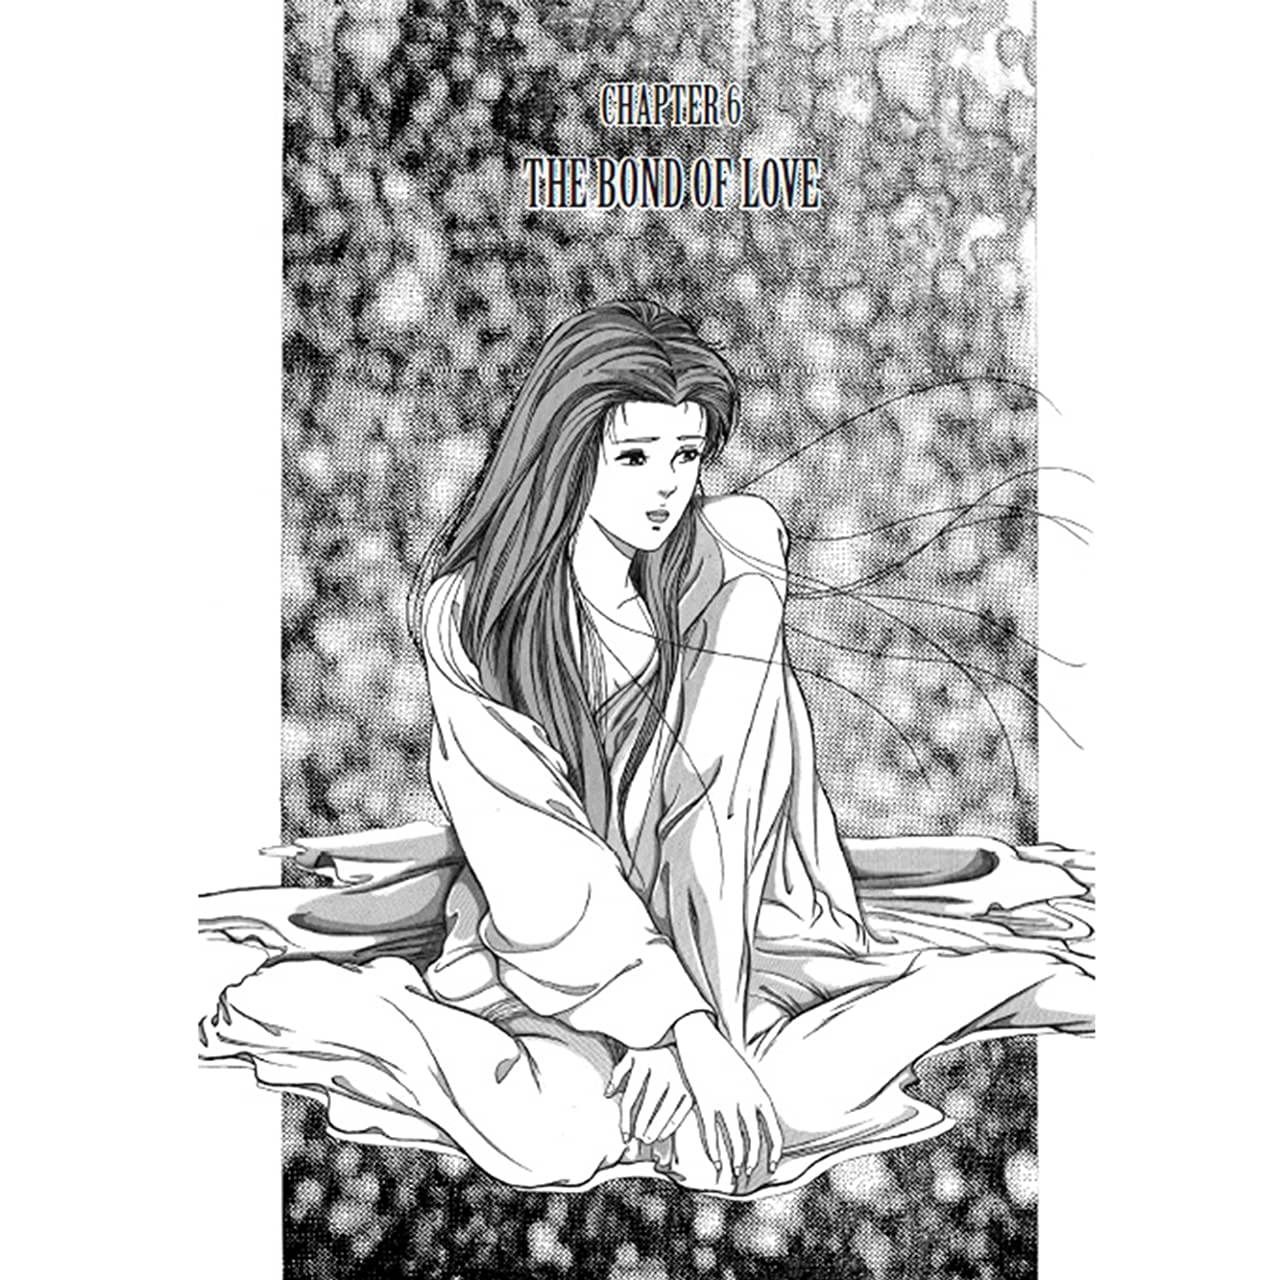 Return of the Condor Heroes Chapter 6 - The Bond of Love